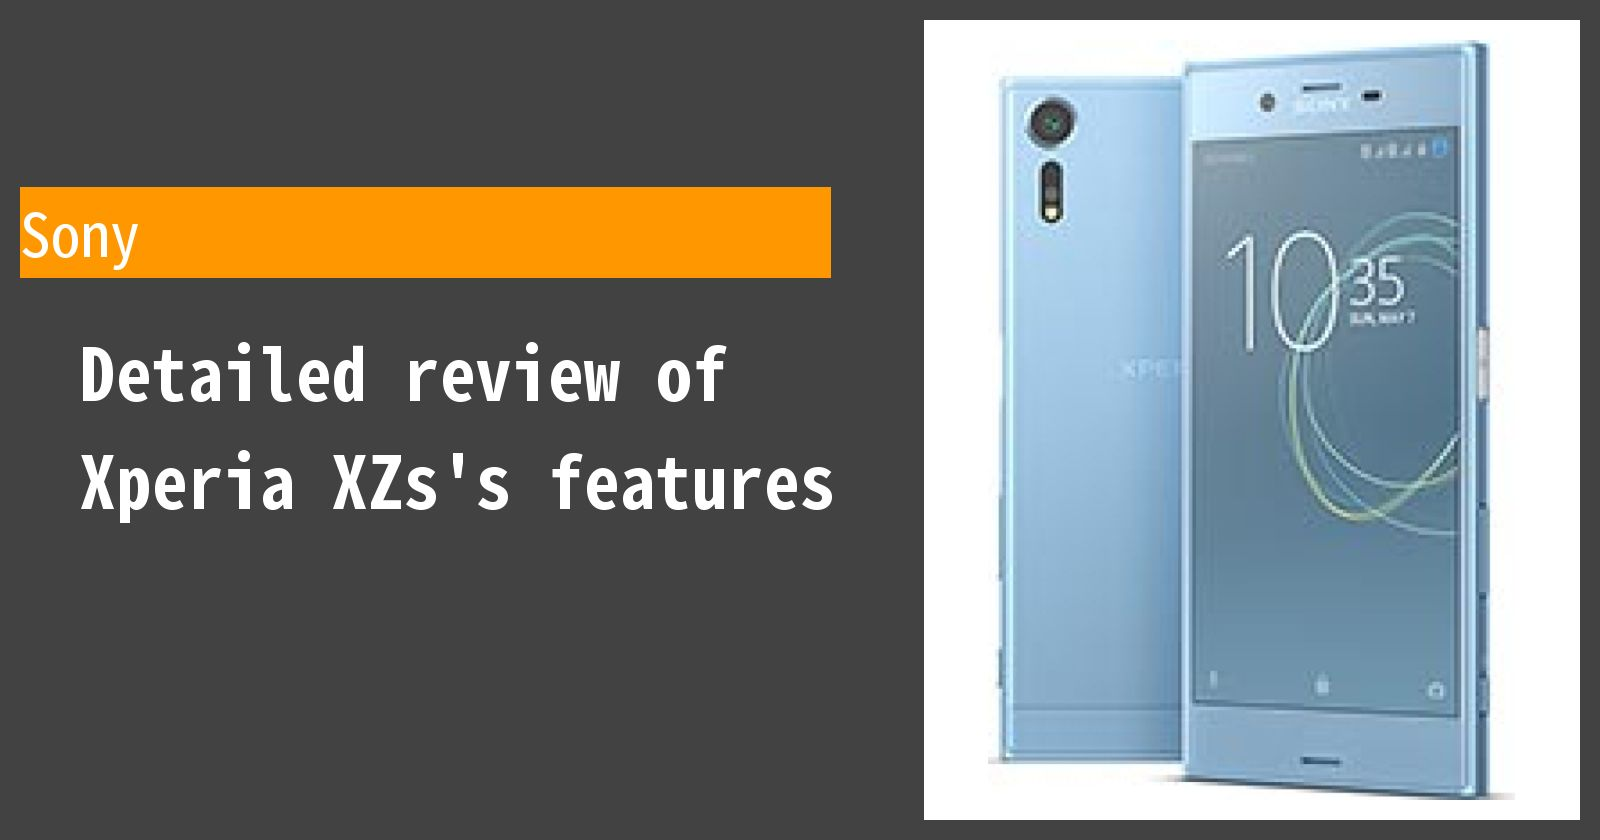 Detailed review of Xperia XZs's features